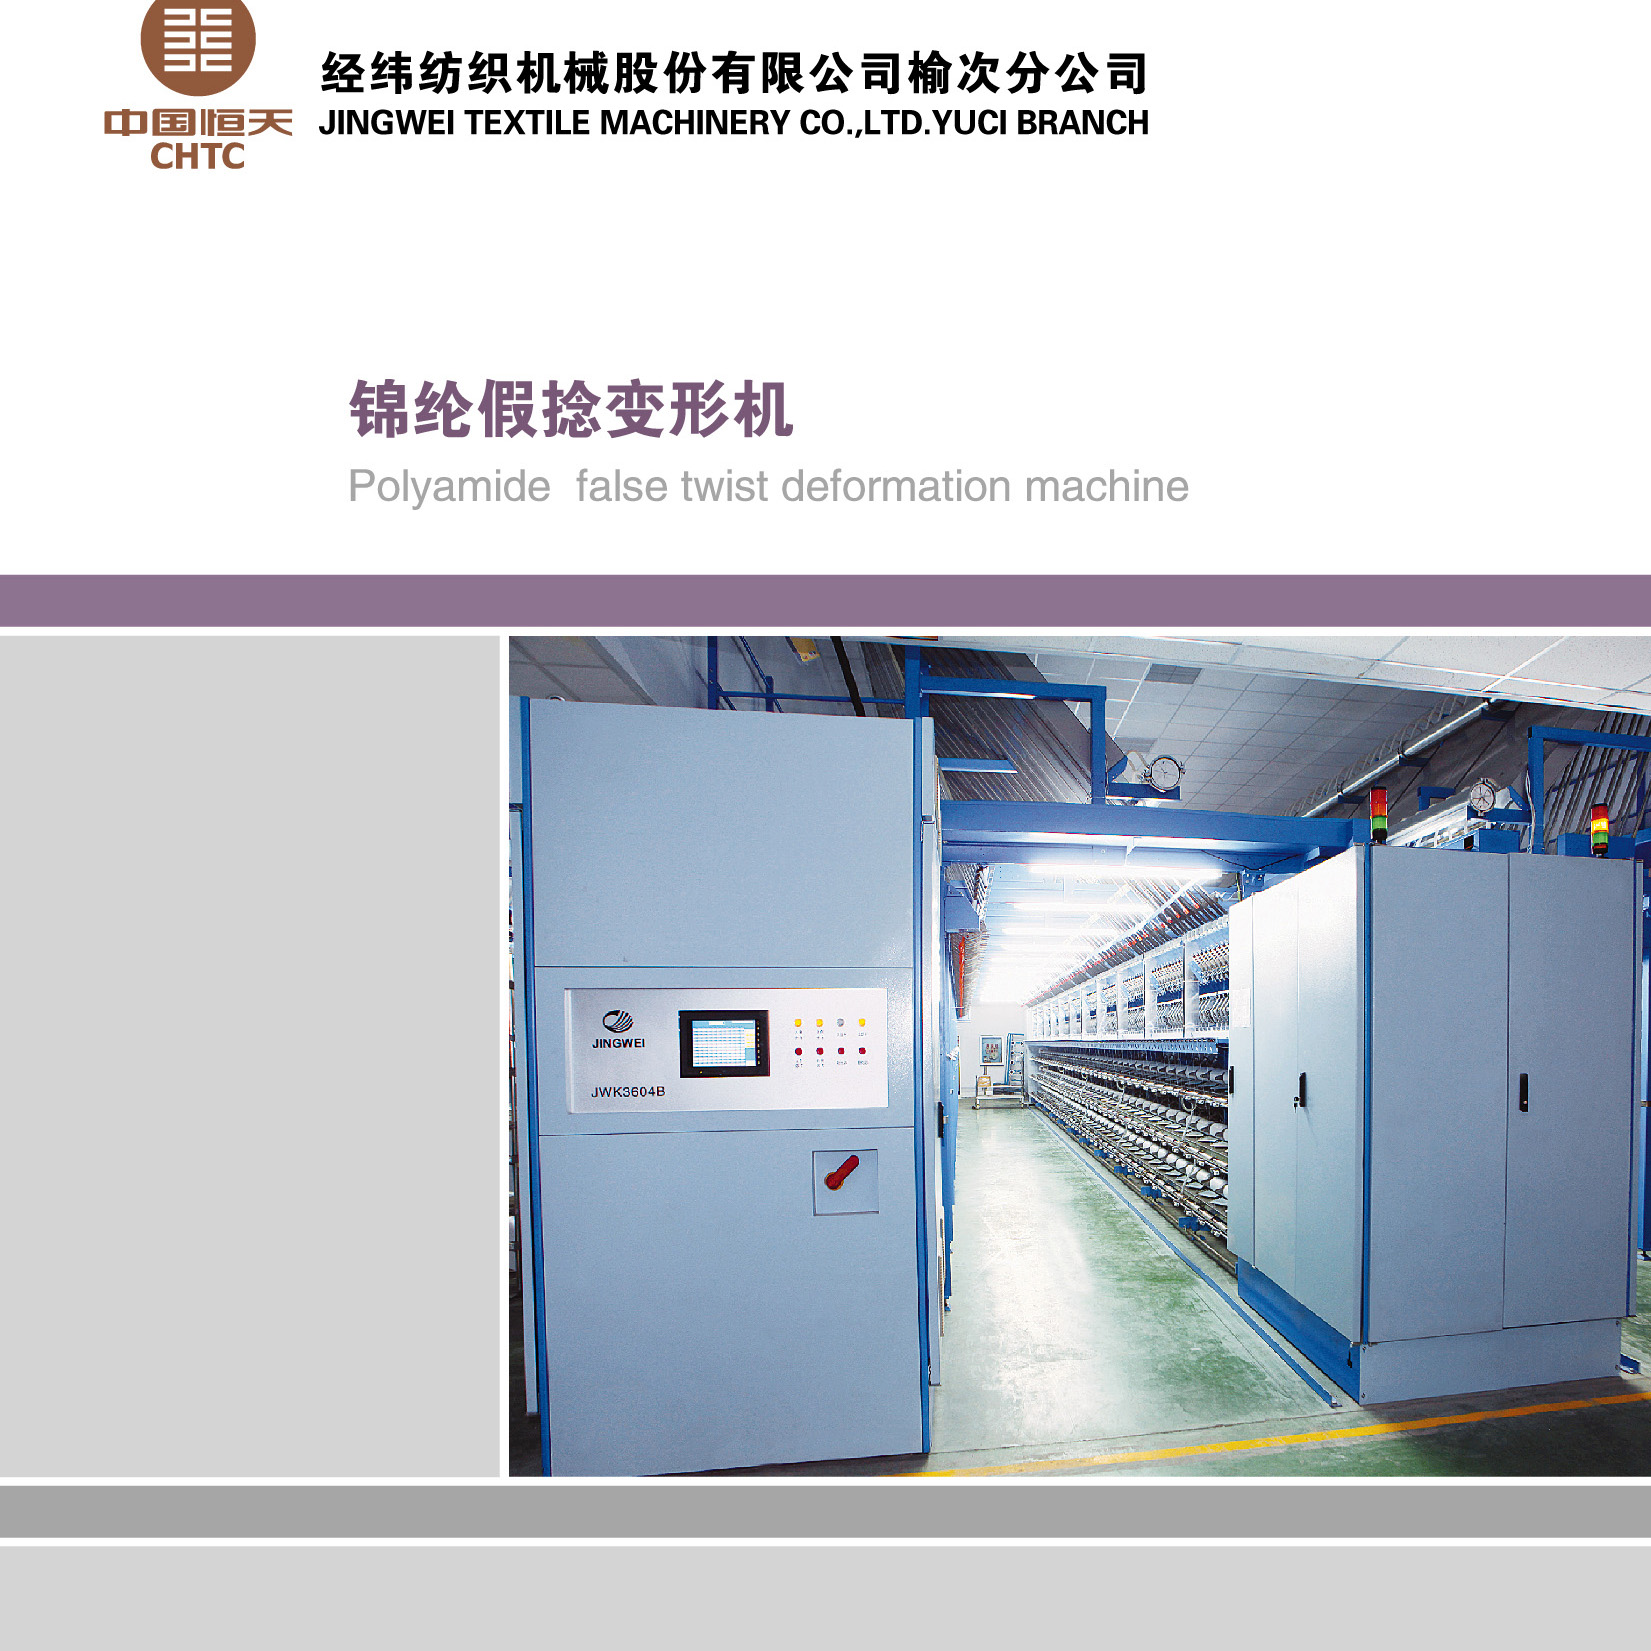 Polyester false twist defomation machine